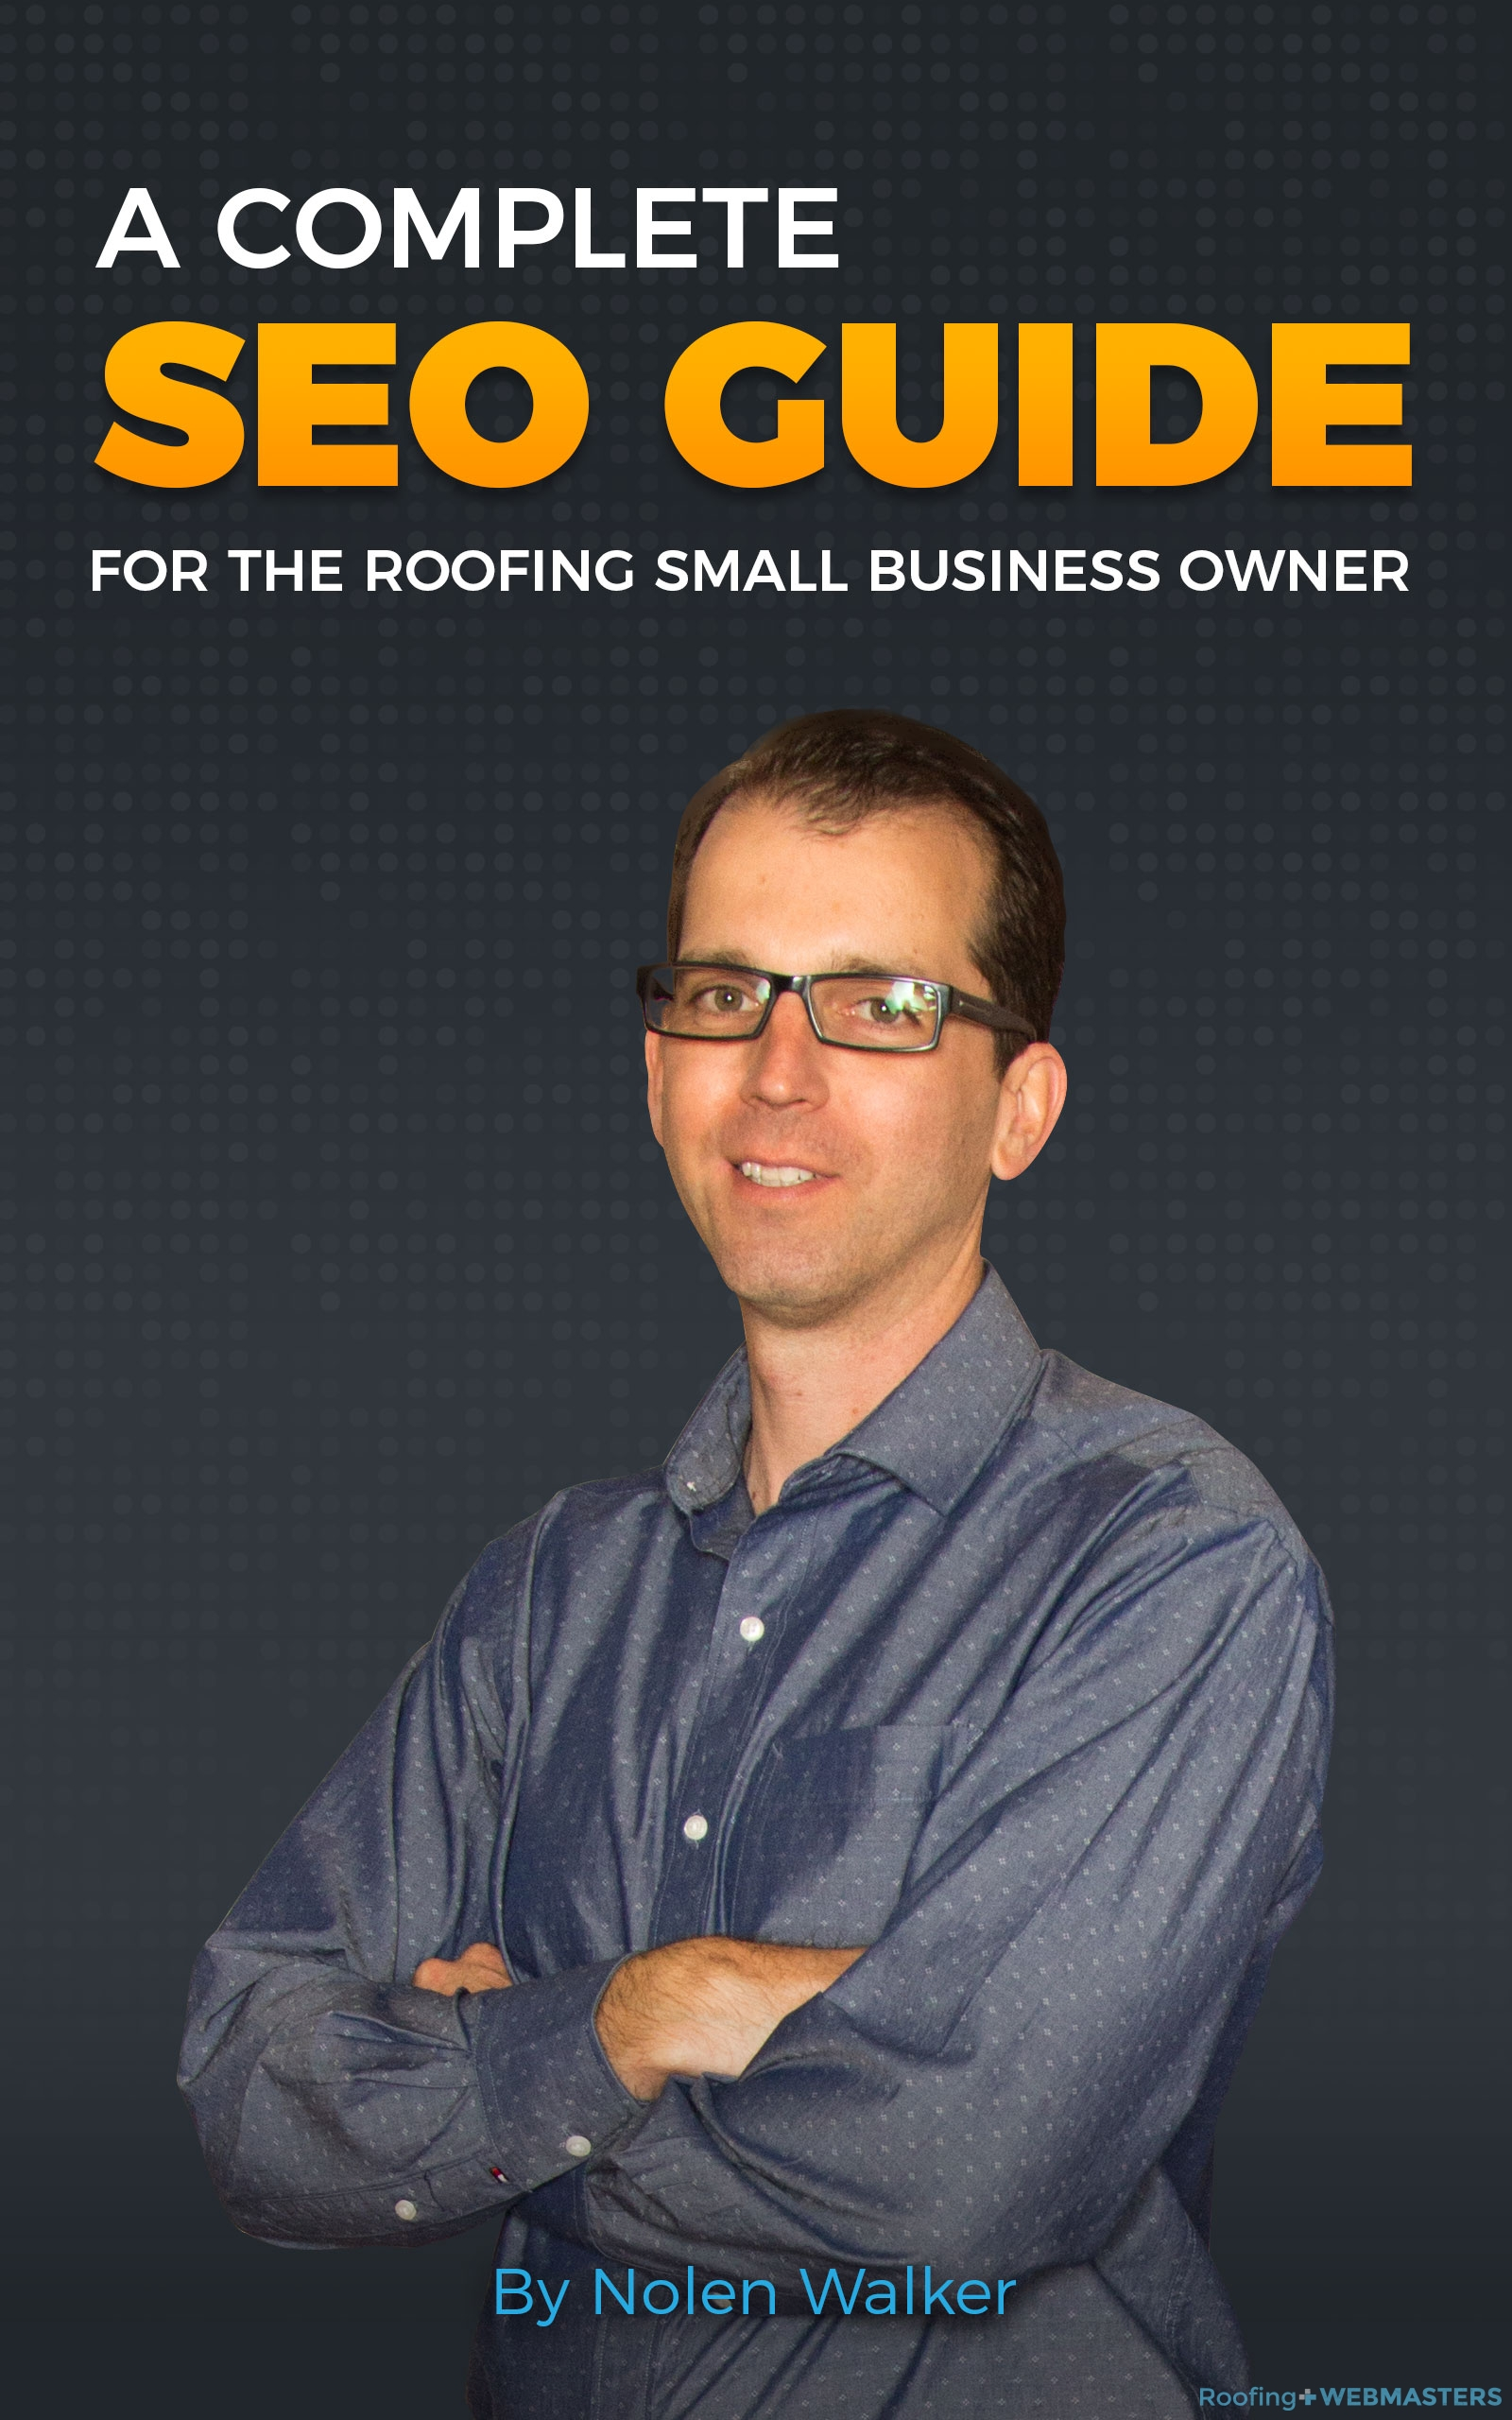 The Complete SEO Guide for the Roofing Small Business Owner